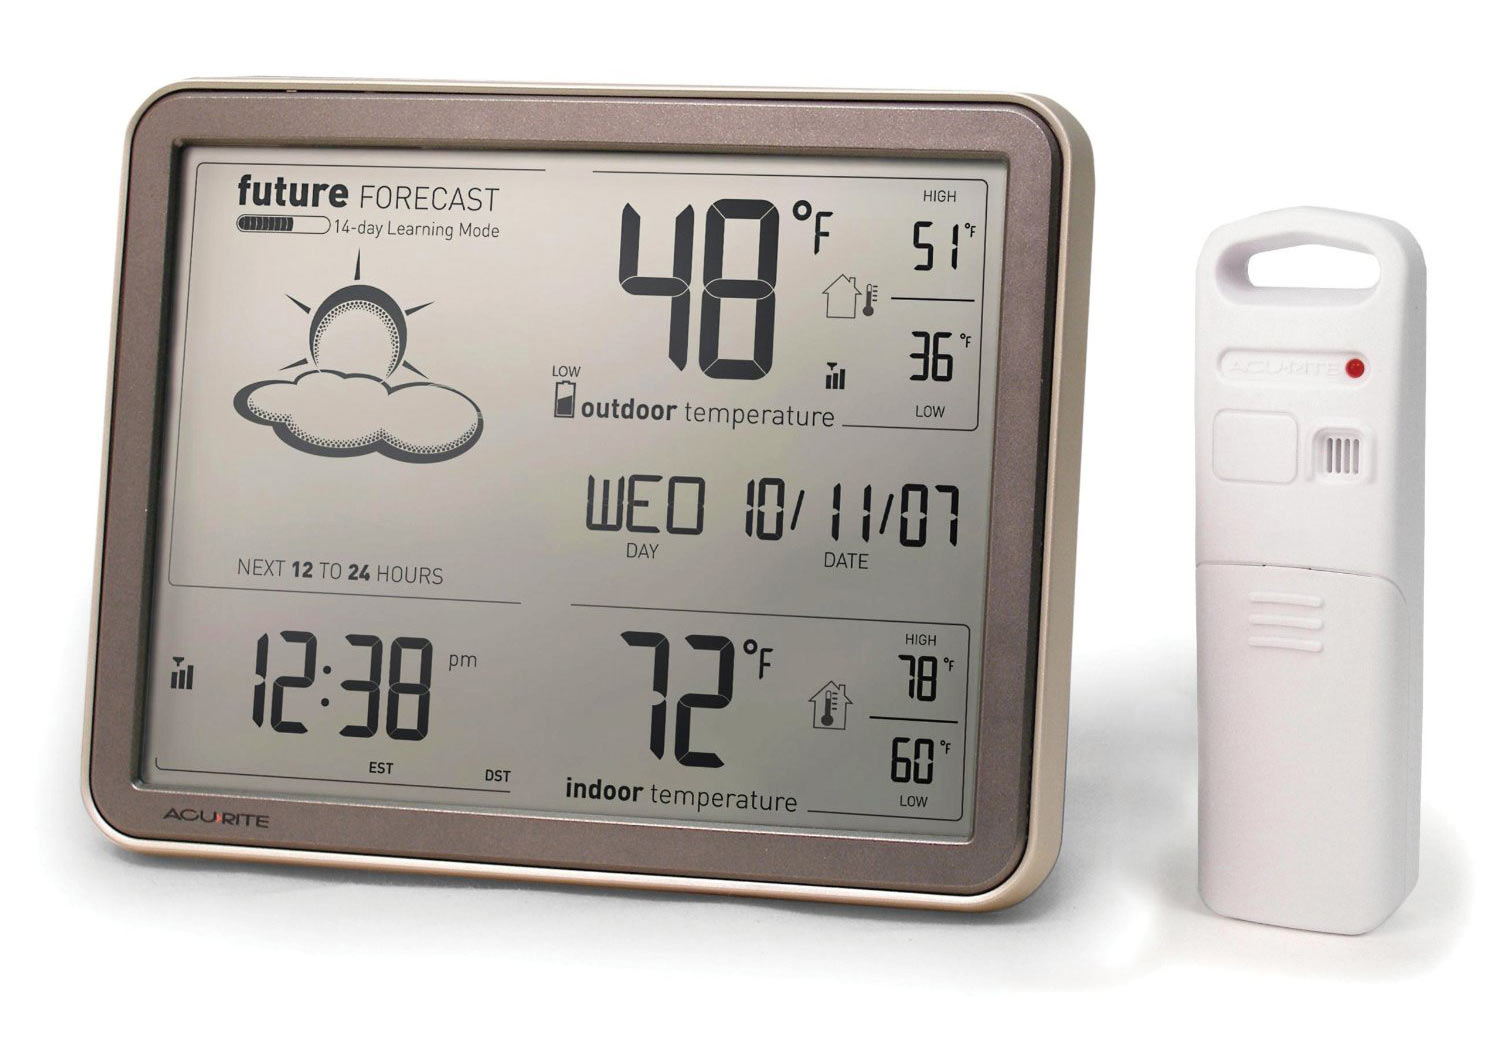 wireless indoor outdoor thermometer Best Indoor Outdoor Wireless Thermometer | NWC wireless indoor outdoor thermometer